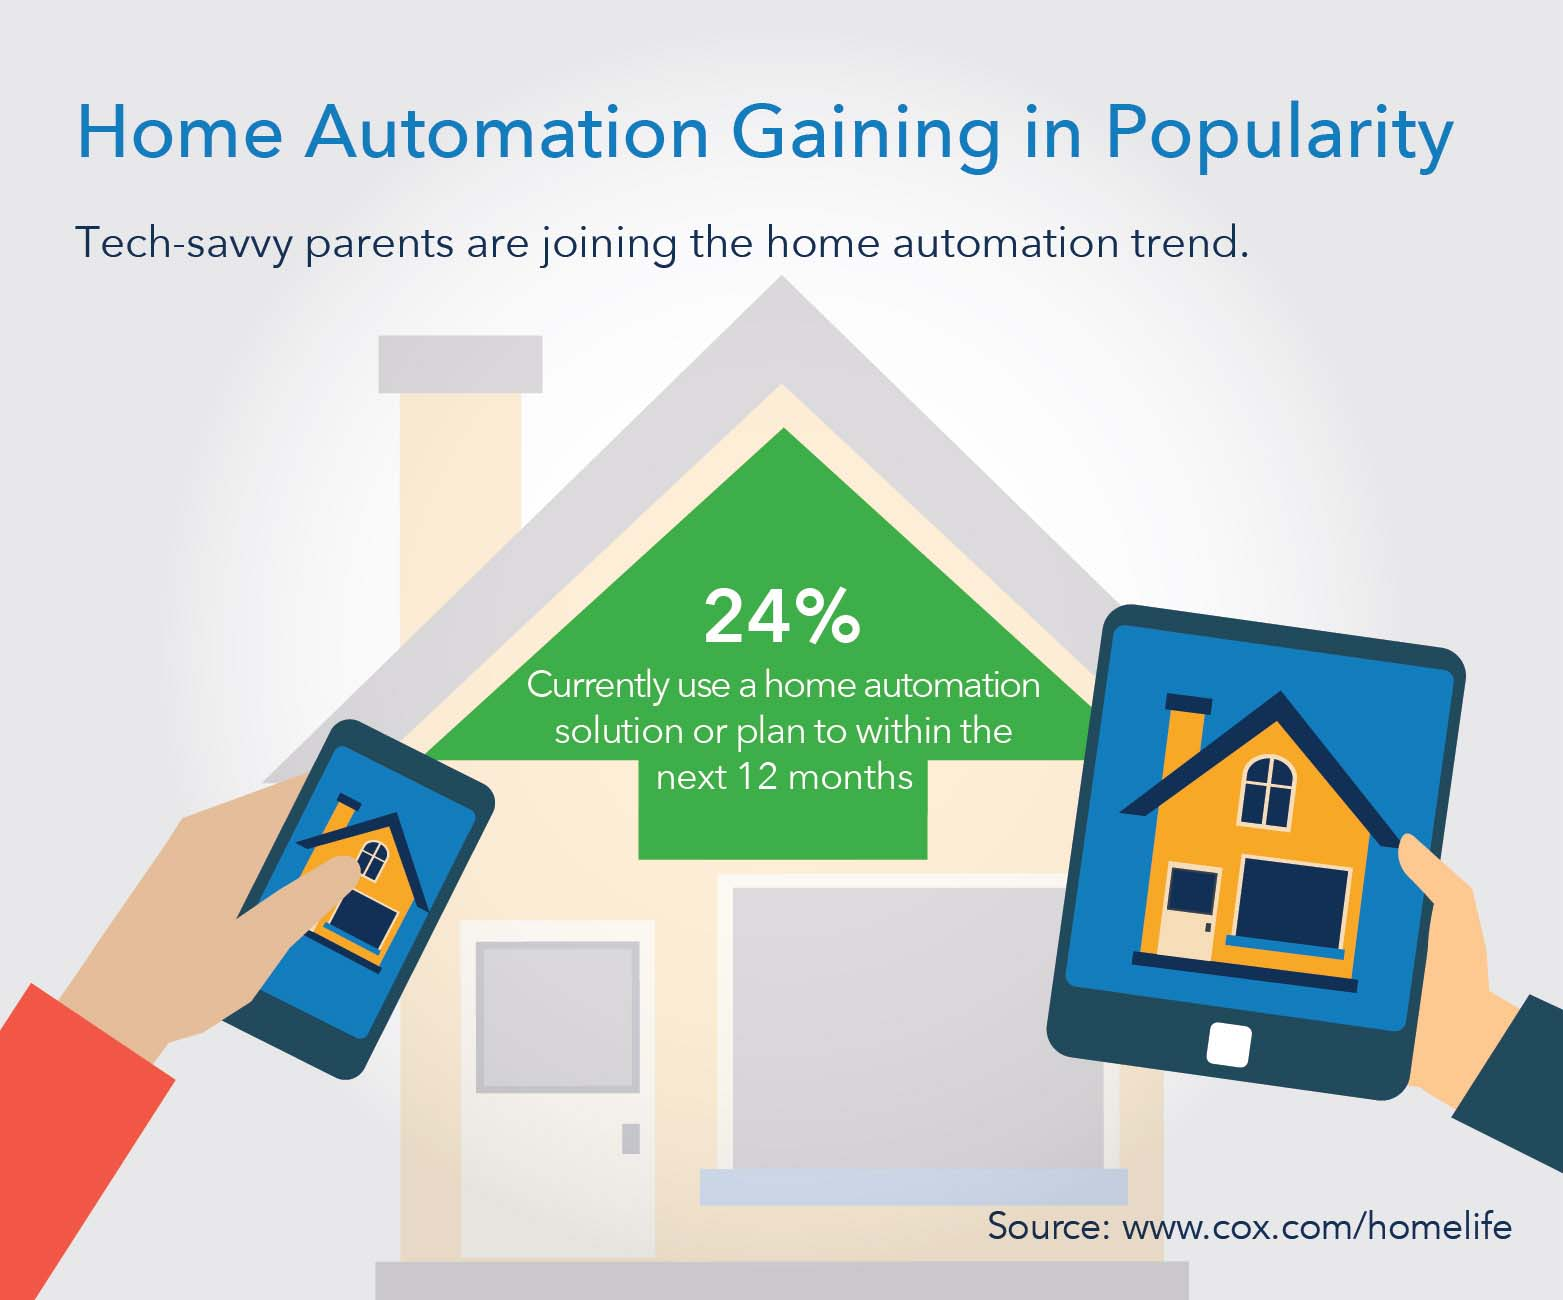 Marketplace News: The home automation trend is popular among parents